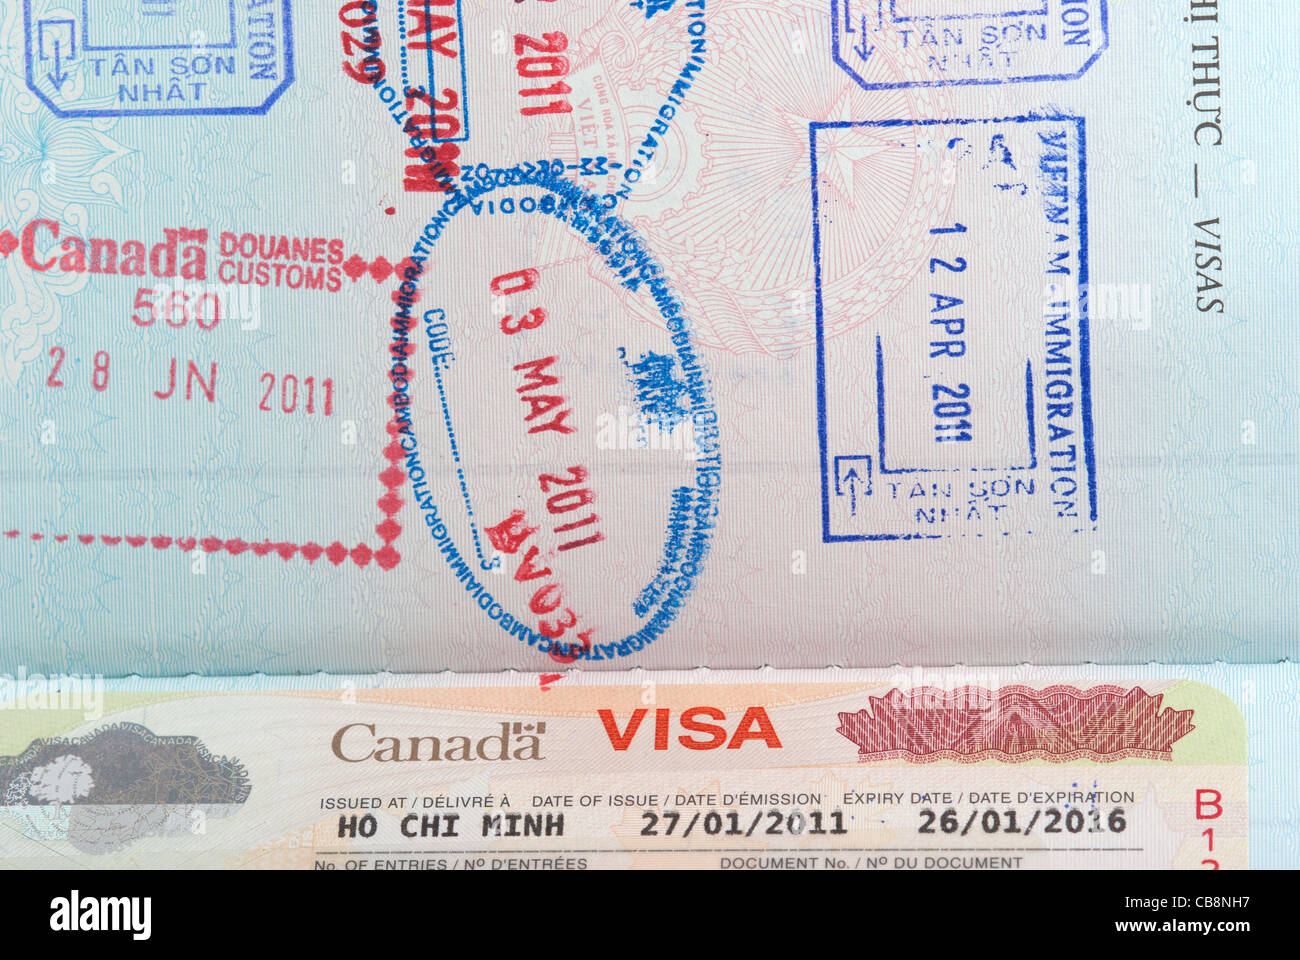 Canadian Visa Along With Passport Stamps In A Vietnamese